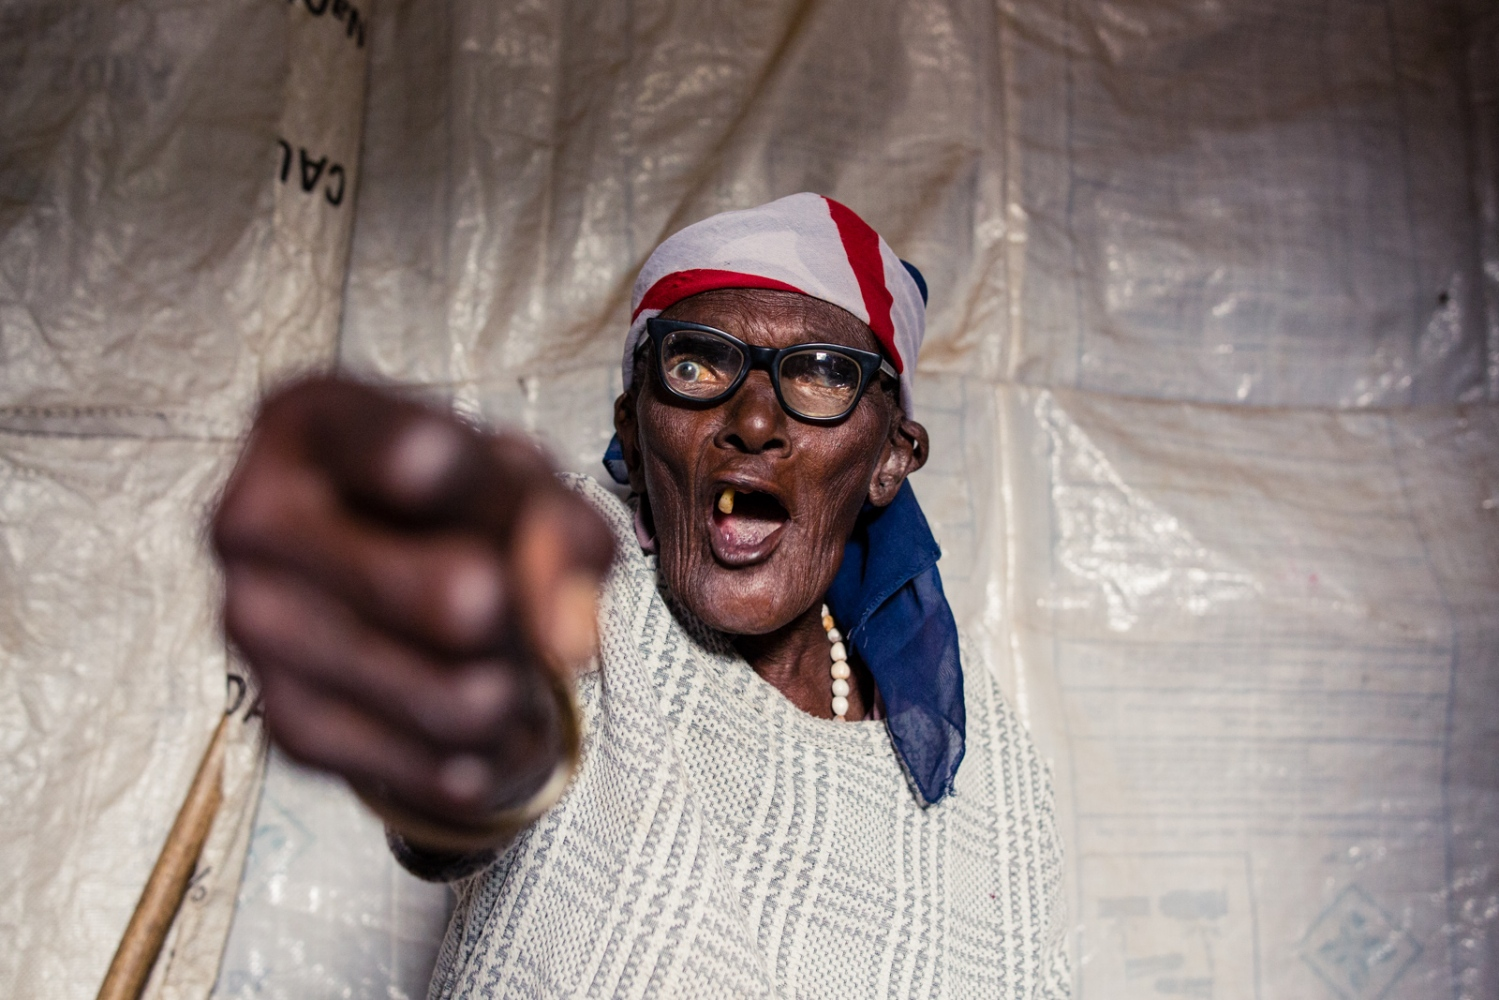 Nairobi, KENYA, February 28, 2017: Helen Wairimu, 106, is the oldest participant of the 'Shosho Jikinge' (Engl.: 'Grandmother defend yourself') group in the Korogocho township. A rape survivor, Helen has been training self-defense techniques with around 20 other ladies, aged between 55-106 years, for six years. In 2016, a heavy-set, young man came to Helen's hut and raped her. Helen still participates in the class every week, eager to encourage the other women to train harder through her role as a survivor.